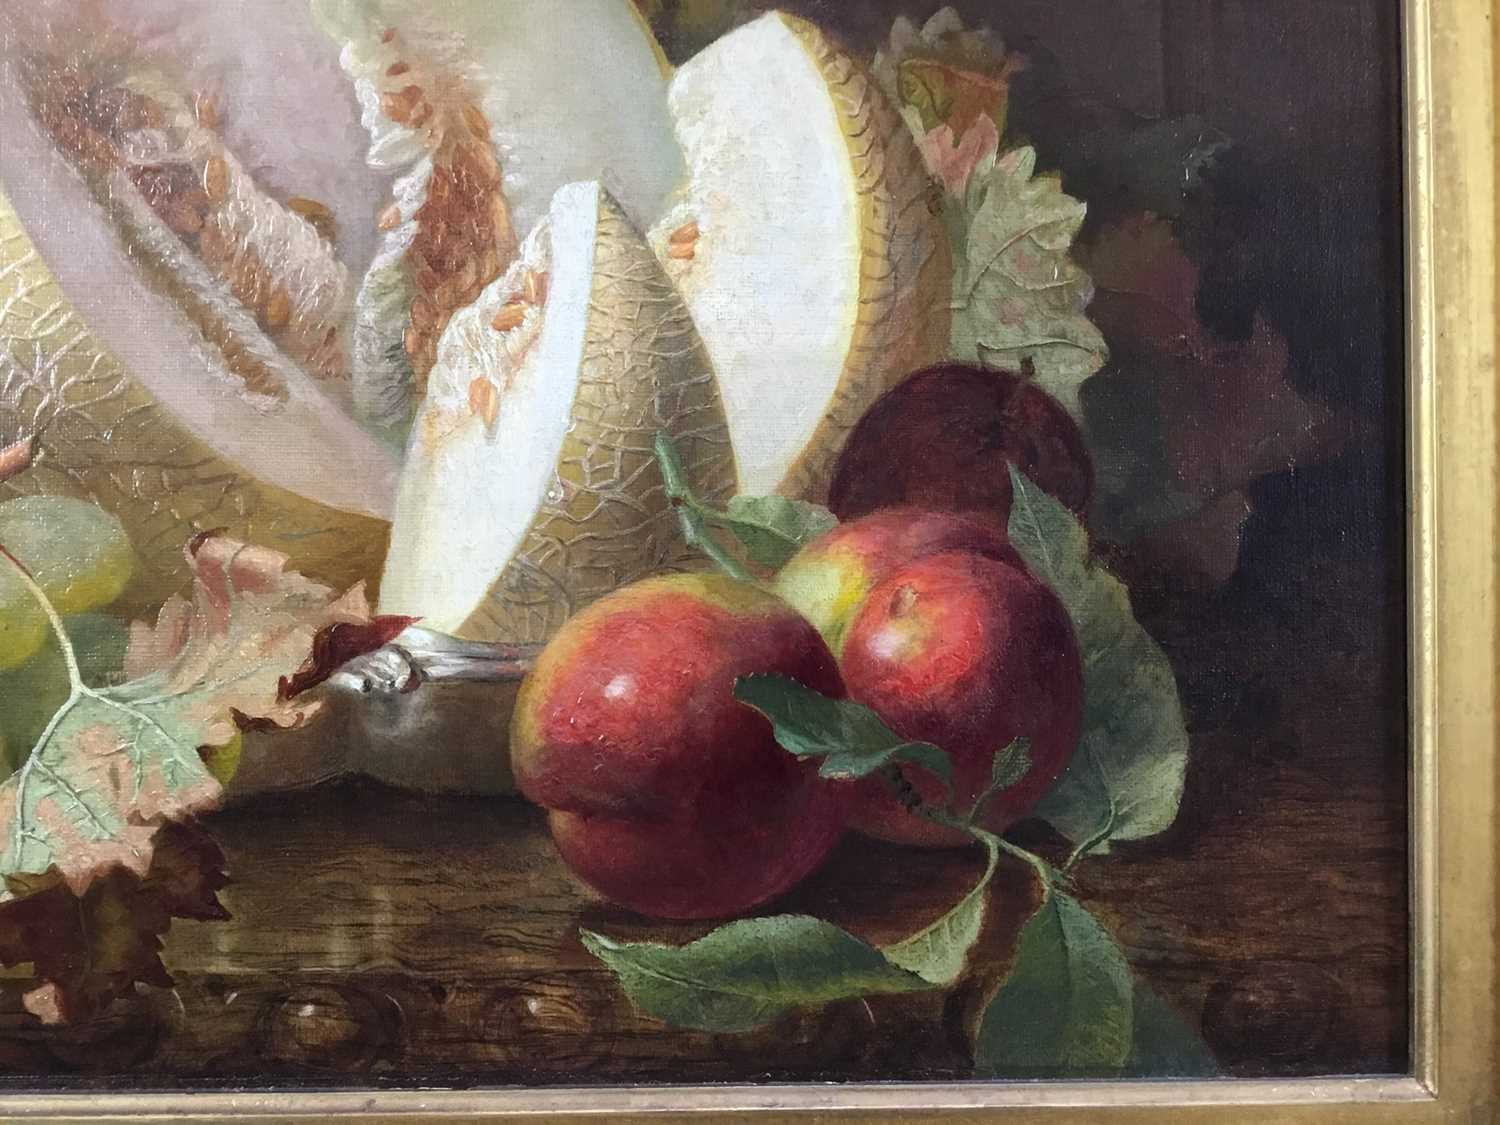 Eloise Harriet Stannard (1828-1915) oil on canvas, Peaches and grapes - Image 9 of 10